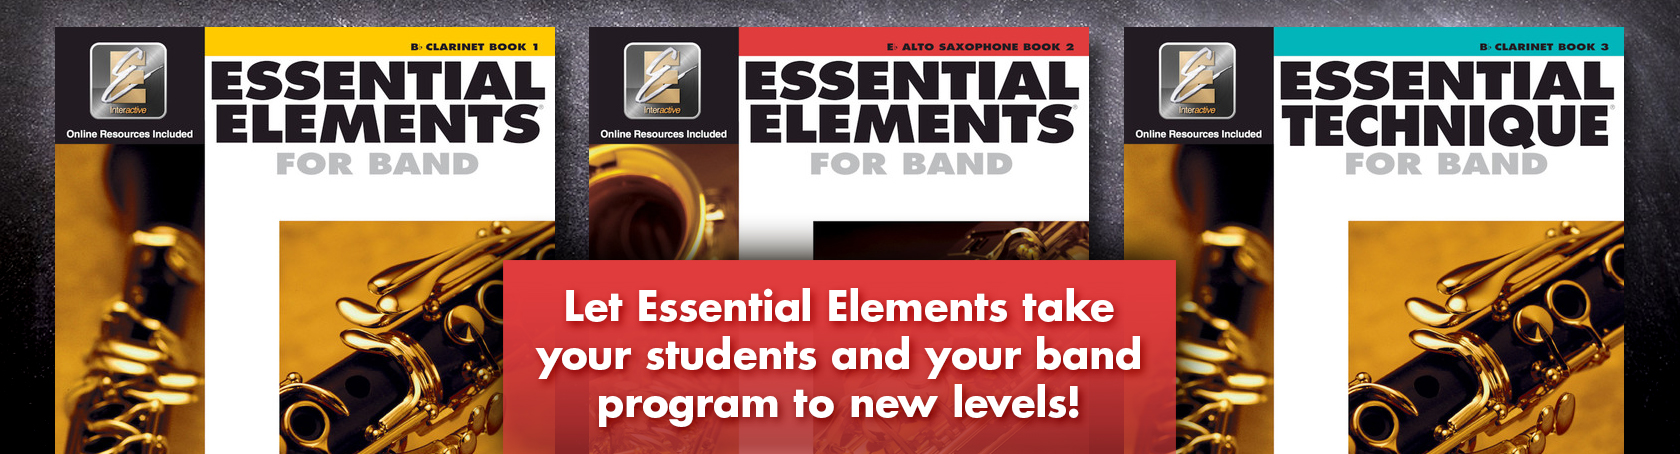 EE Band - Let Essential Elements take your students and your band program to new levels